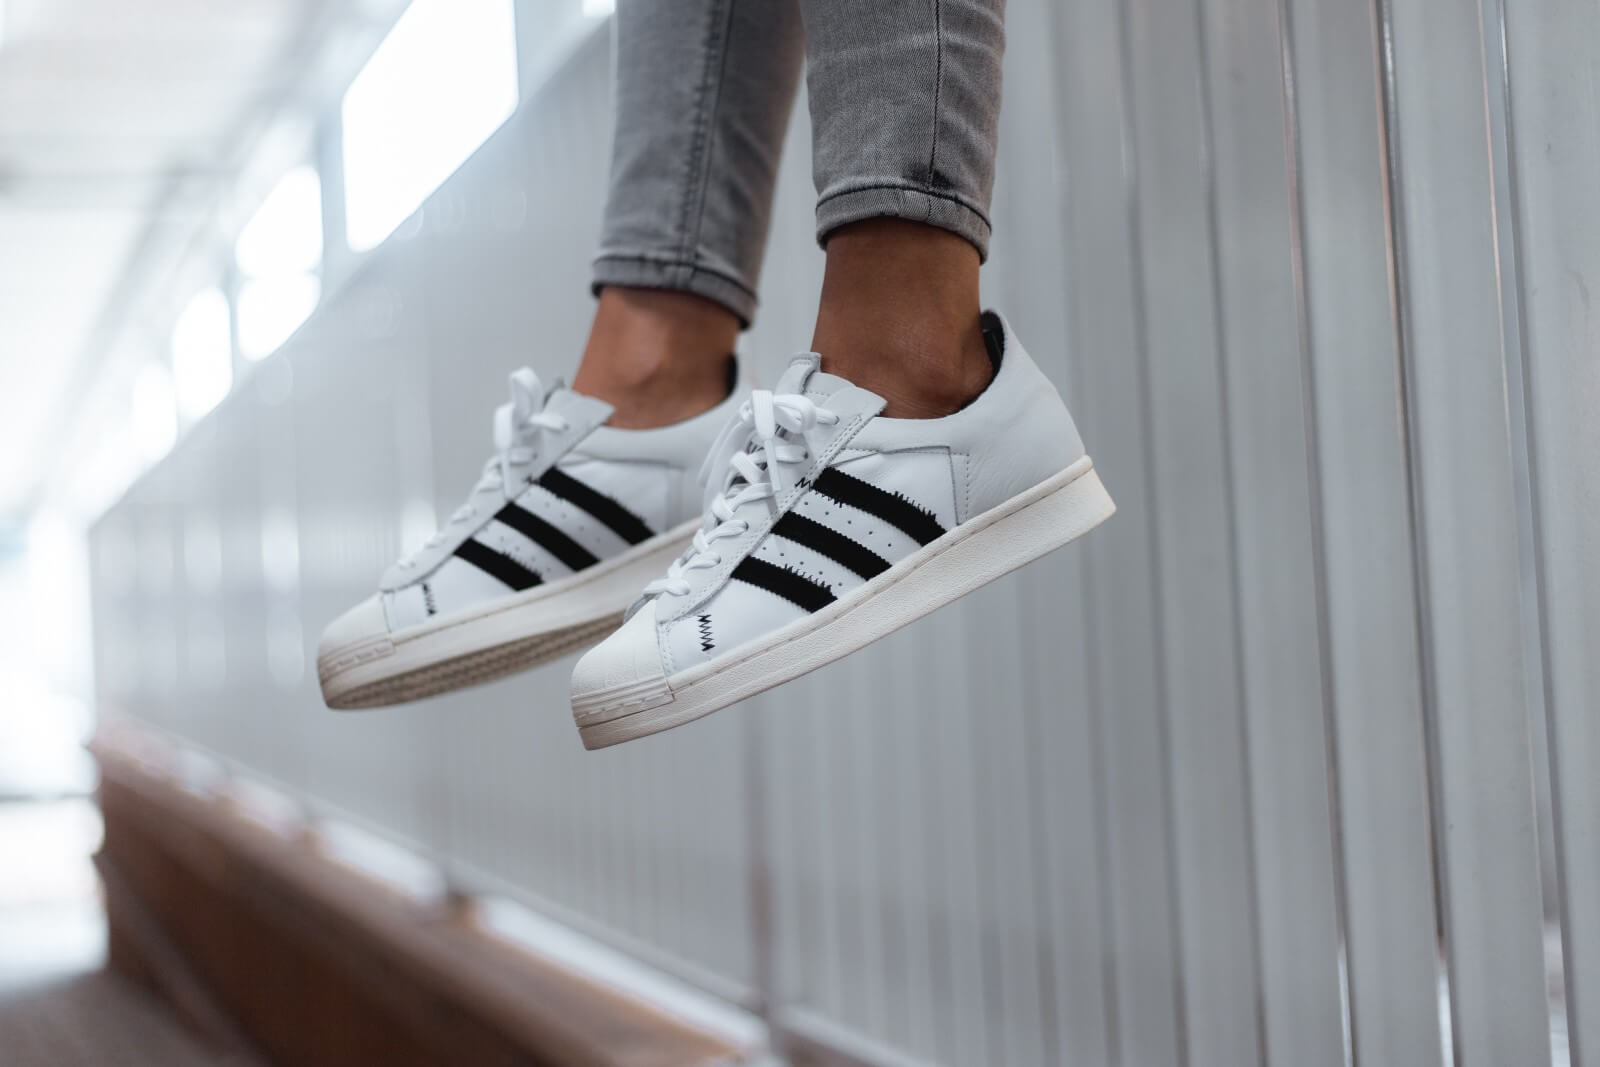 Adidas Superstar Adidas Superstar WS2 Cloud White/Core Black - FV3024